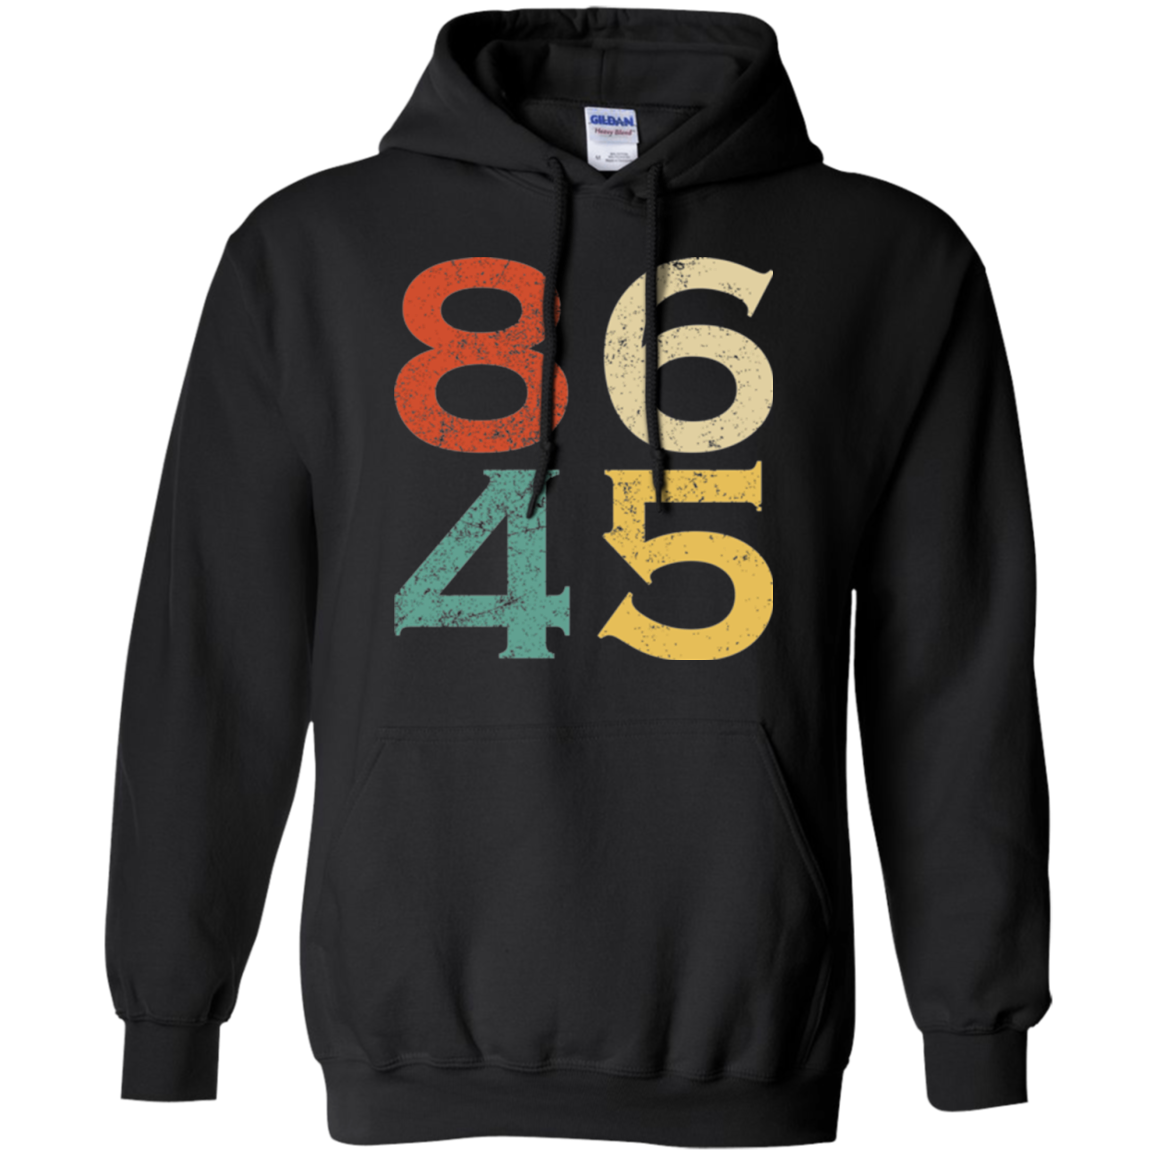 86 45 T shirts Donald Trump Trump Hoodies Sweatshirts TH